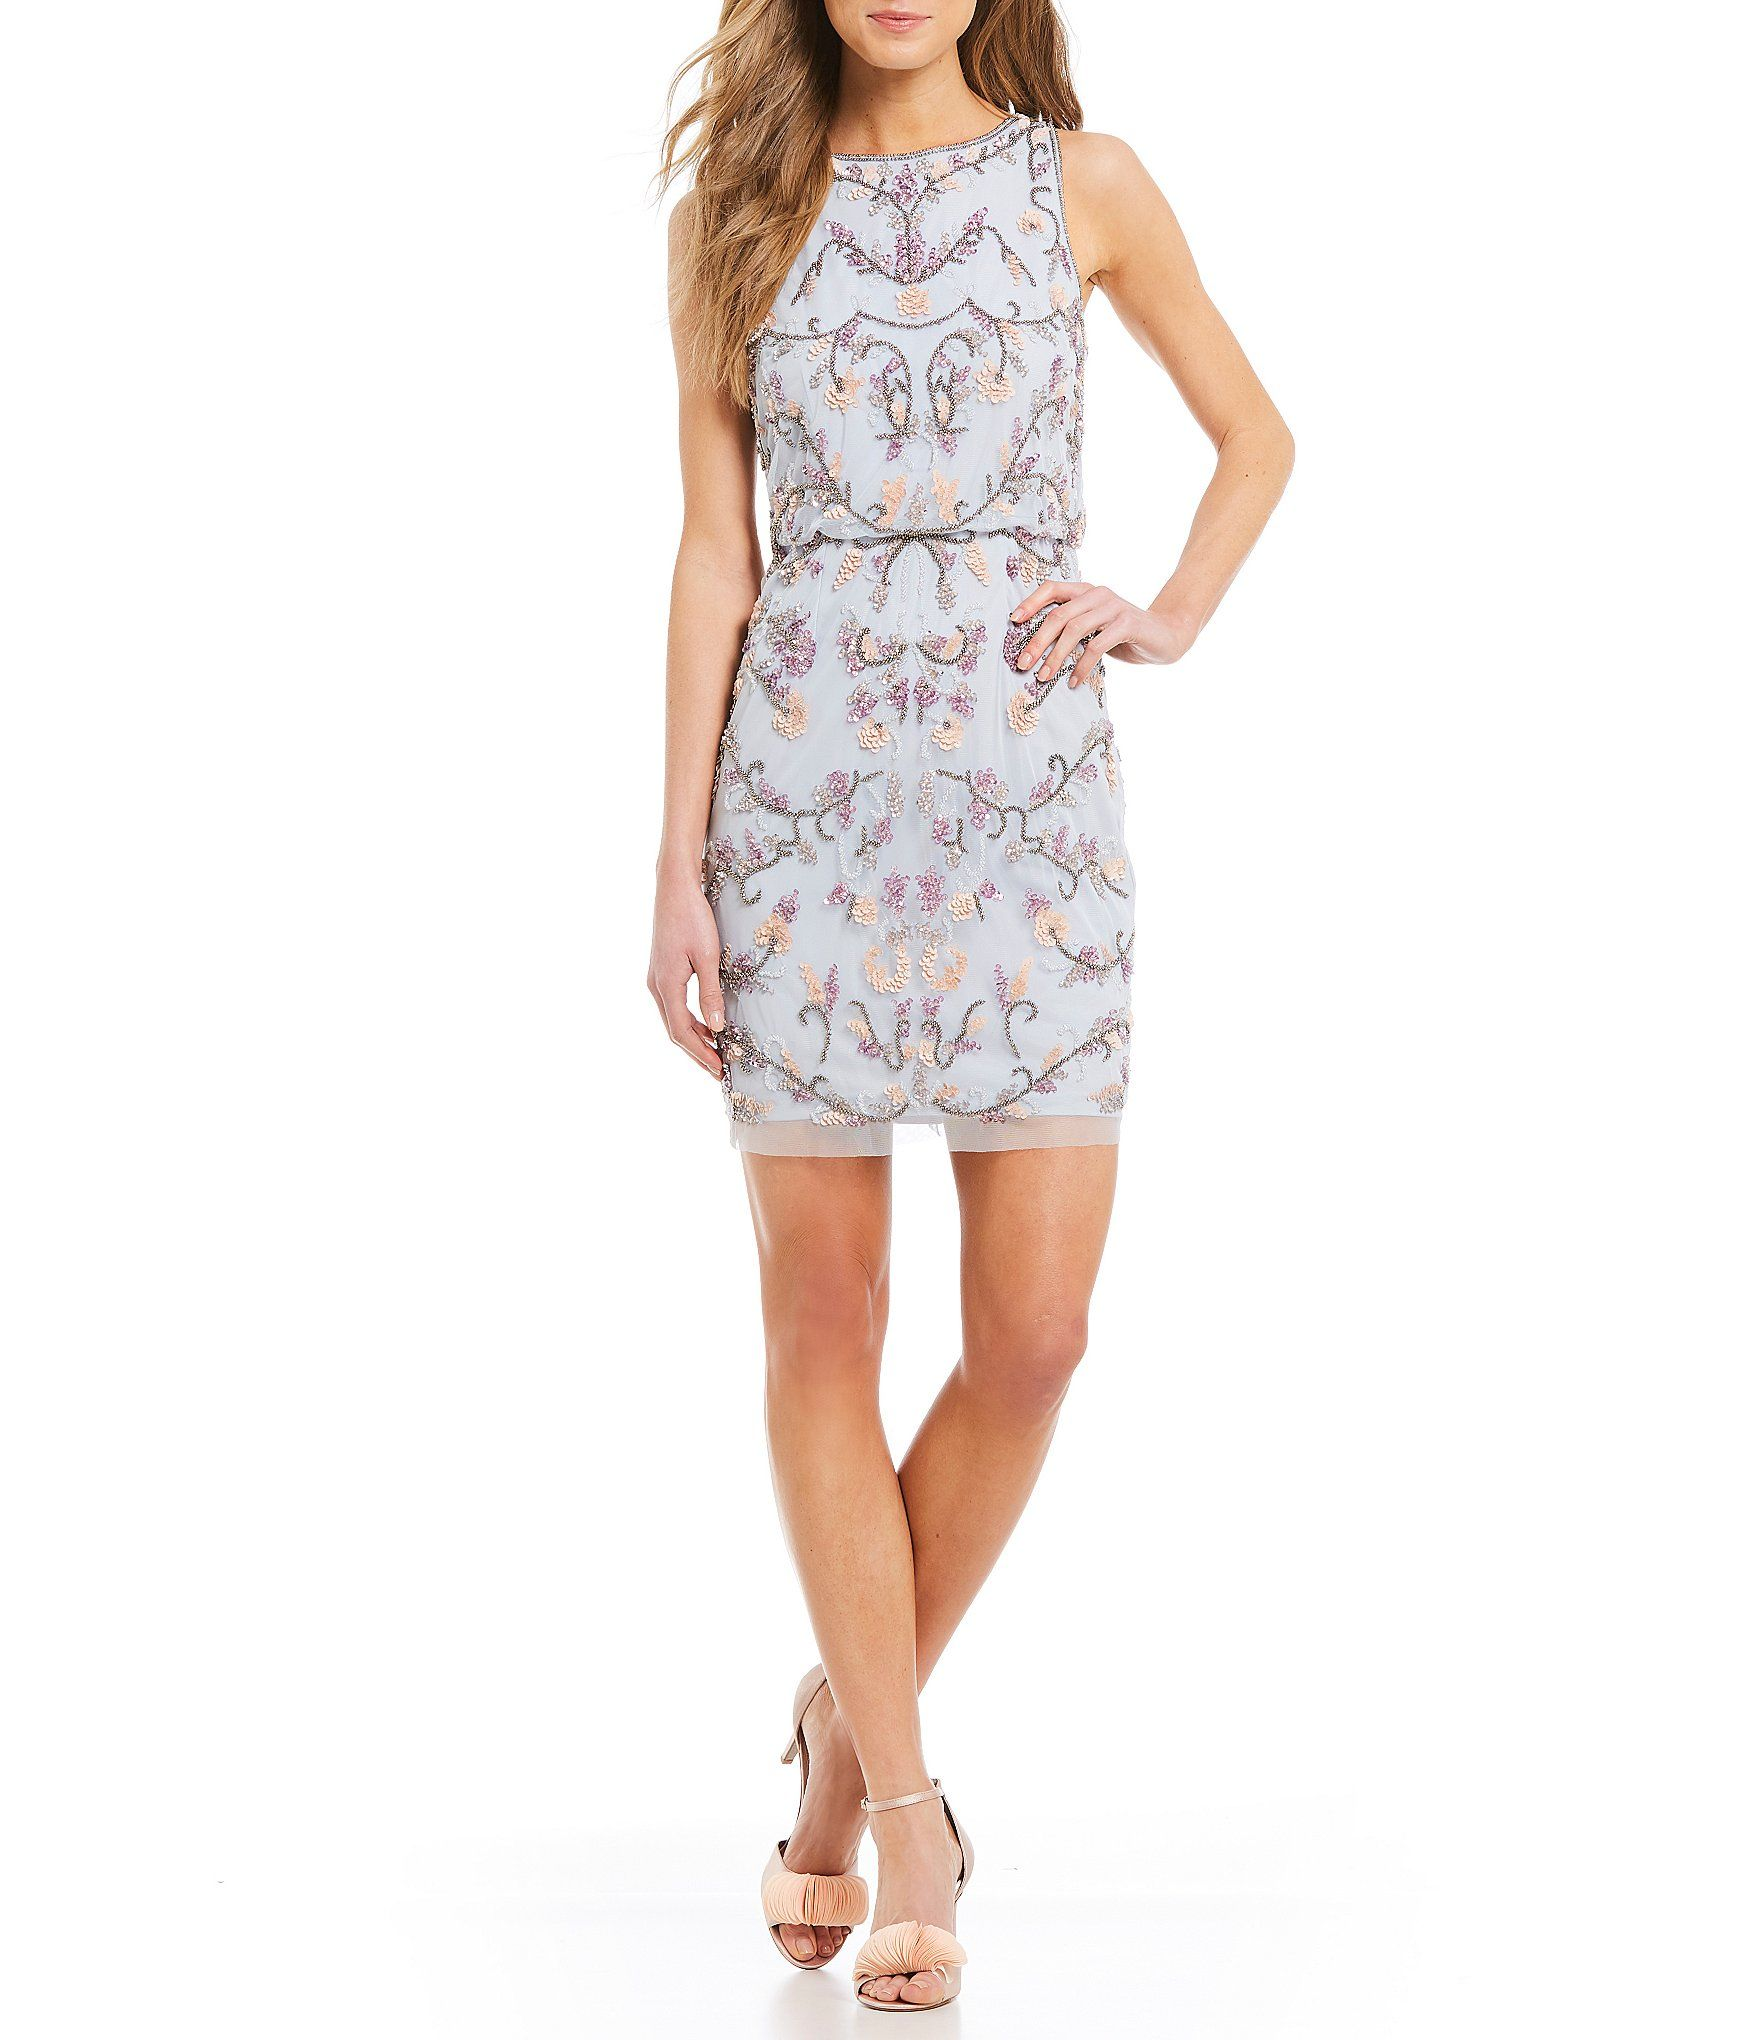 37353f265667 Adrianna Papell Petite Floral Beaded Dress in 2019 | Dresses ...